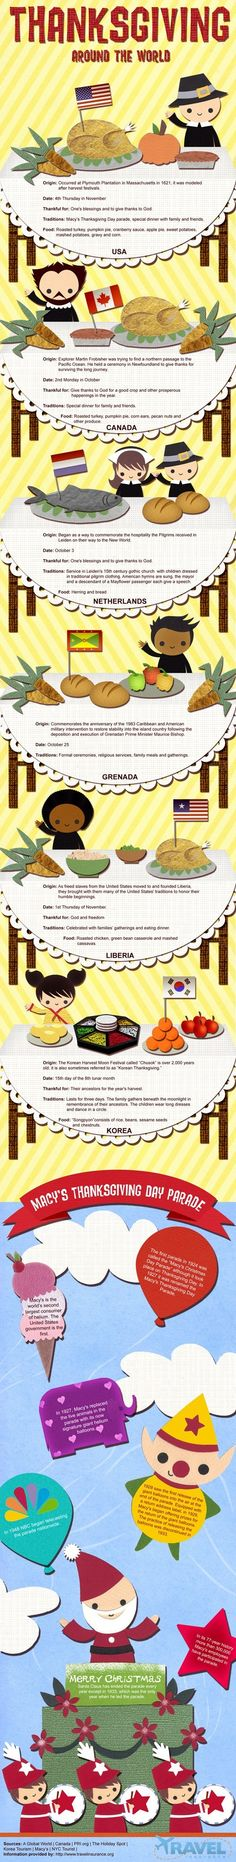 The following infographic specifies the time and the way Thanksgiving Day is celebrated in various countries like USA, Canada, Netherlands, Liberia, Korea, etc.